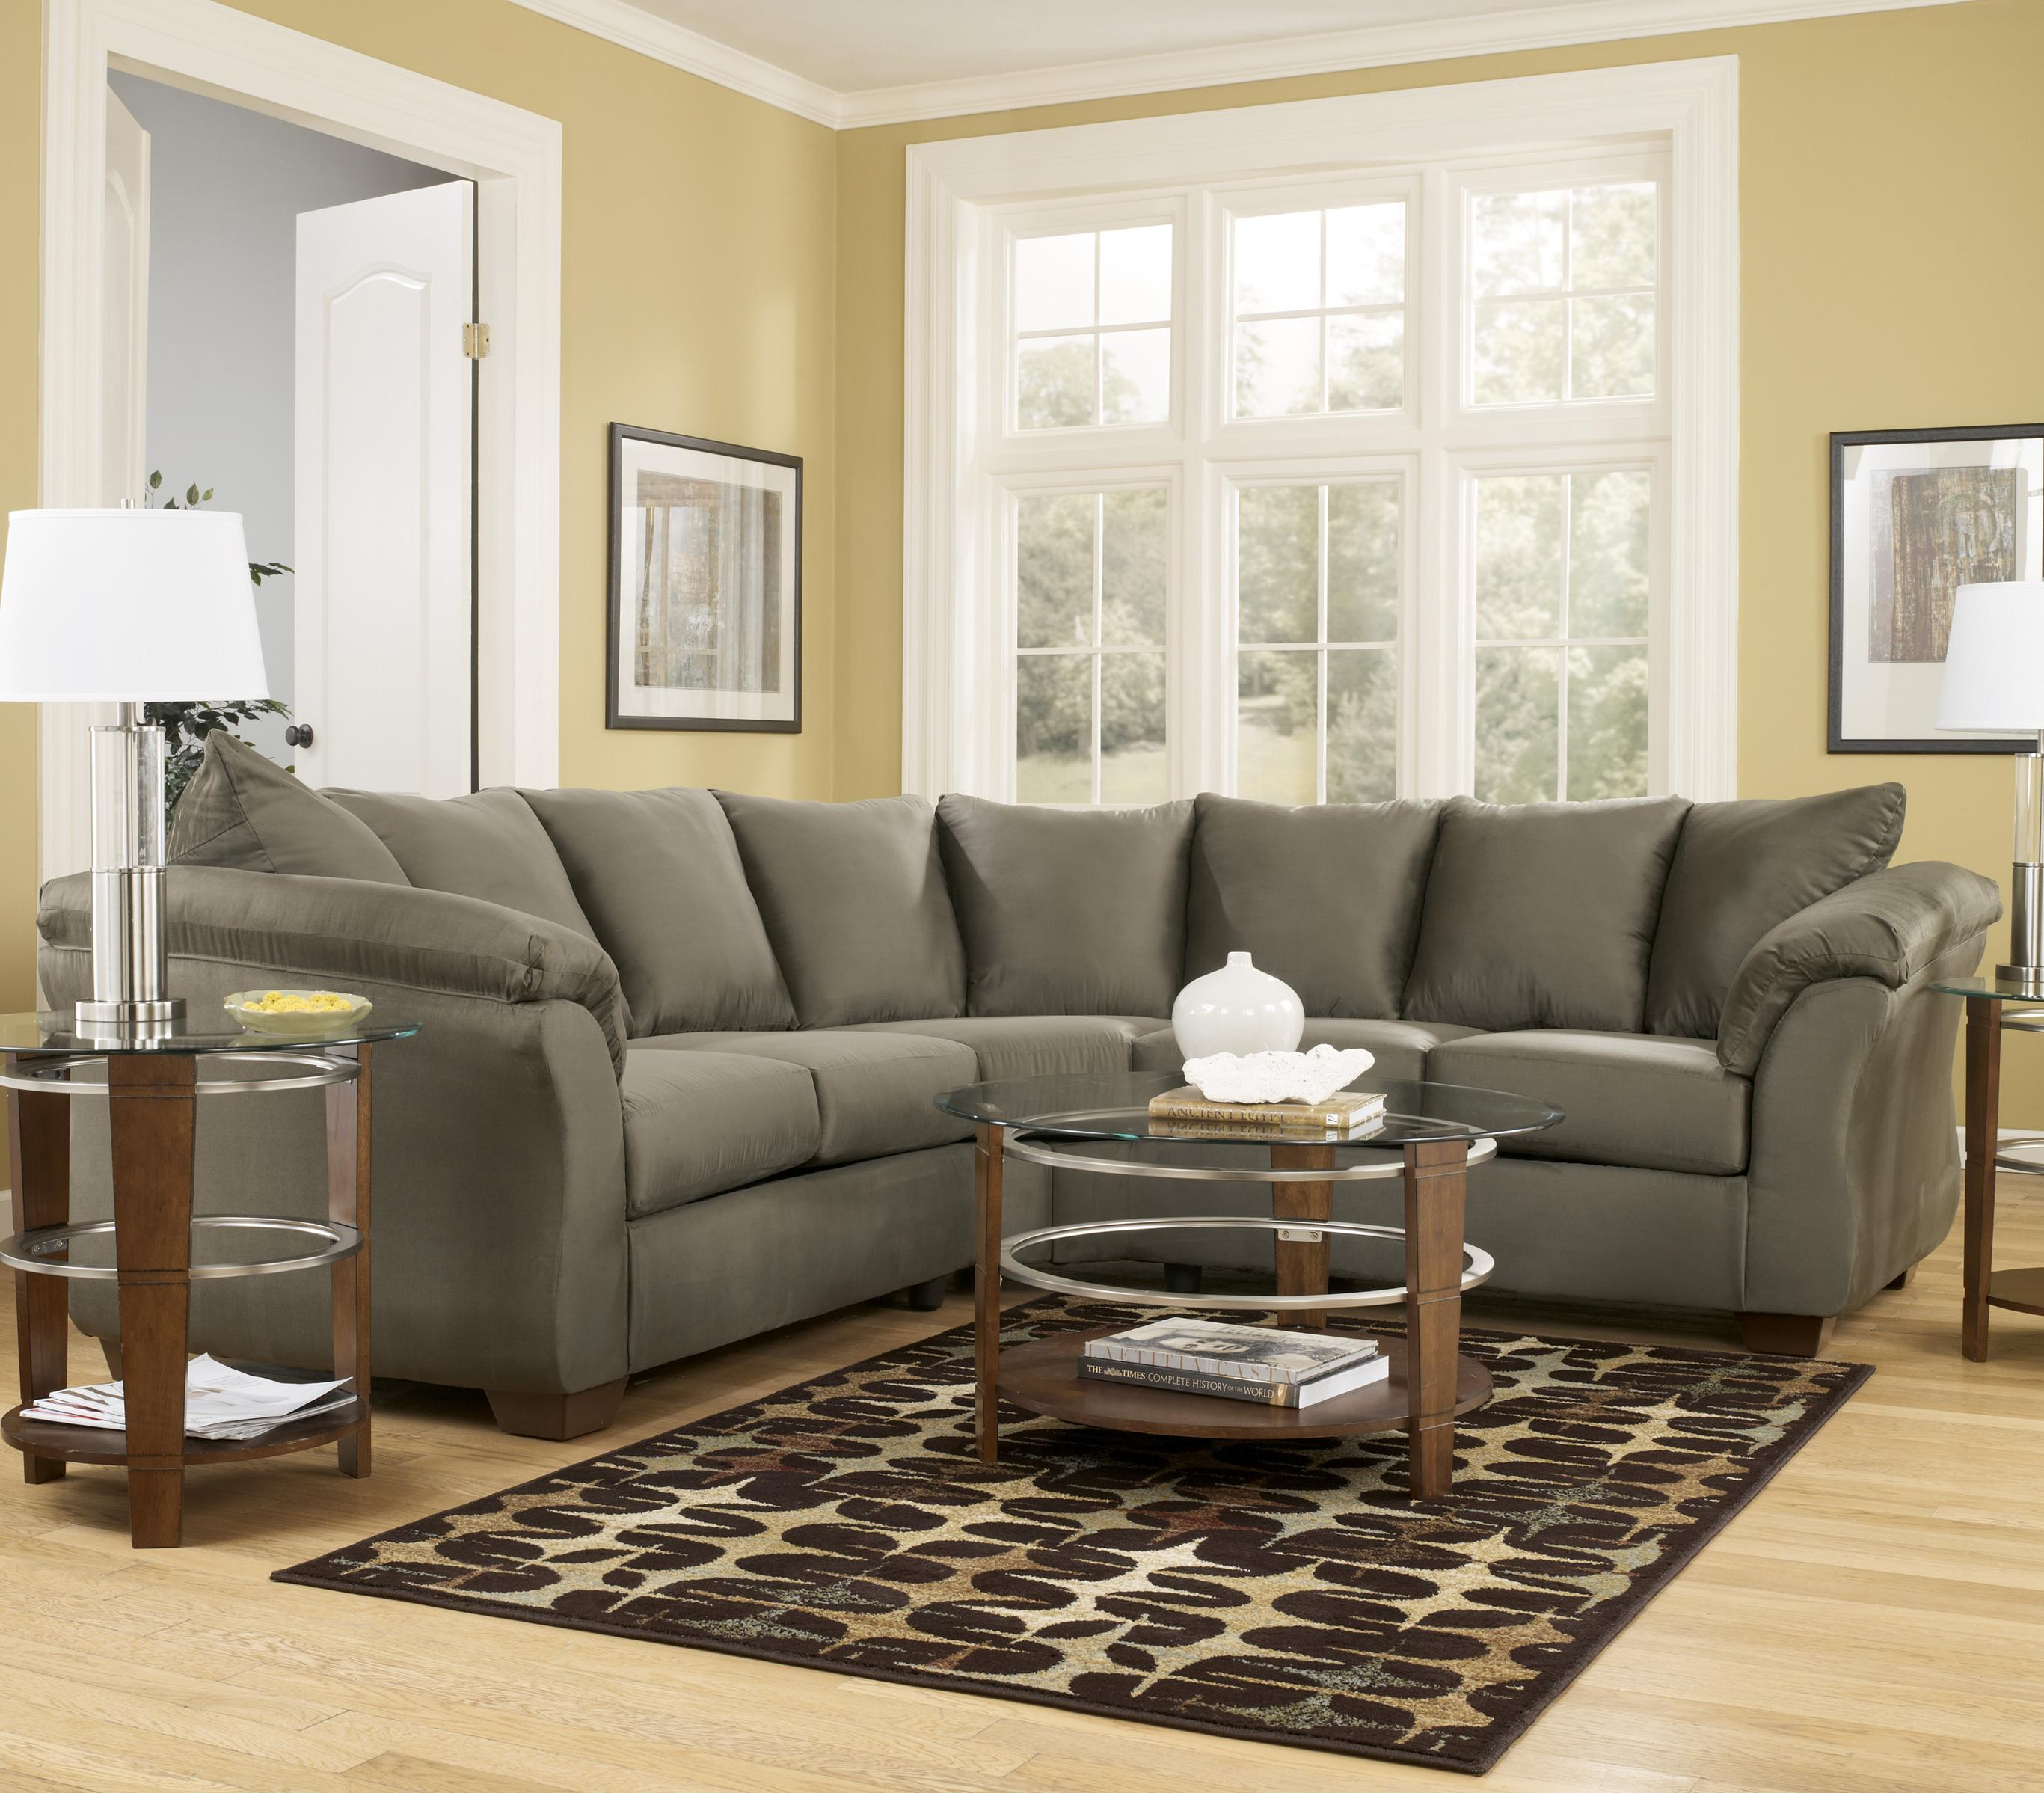 living contemporary shaped in sectional and ideas ashley area for furniture couch sofas sale with u rugs loveseats floor couches sofa wooden sleeper leather your room chaise reclining design cheap